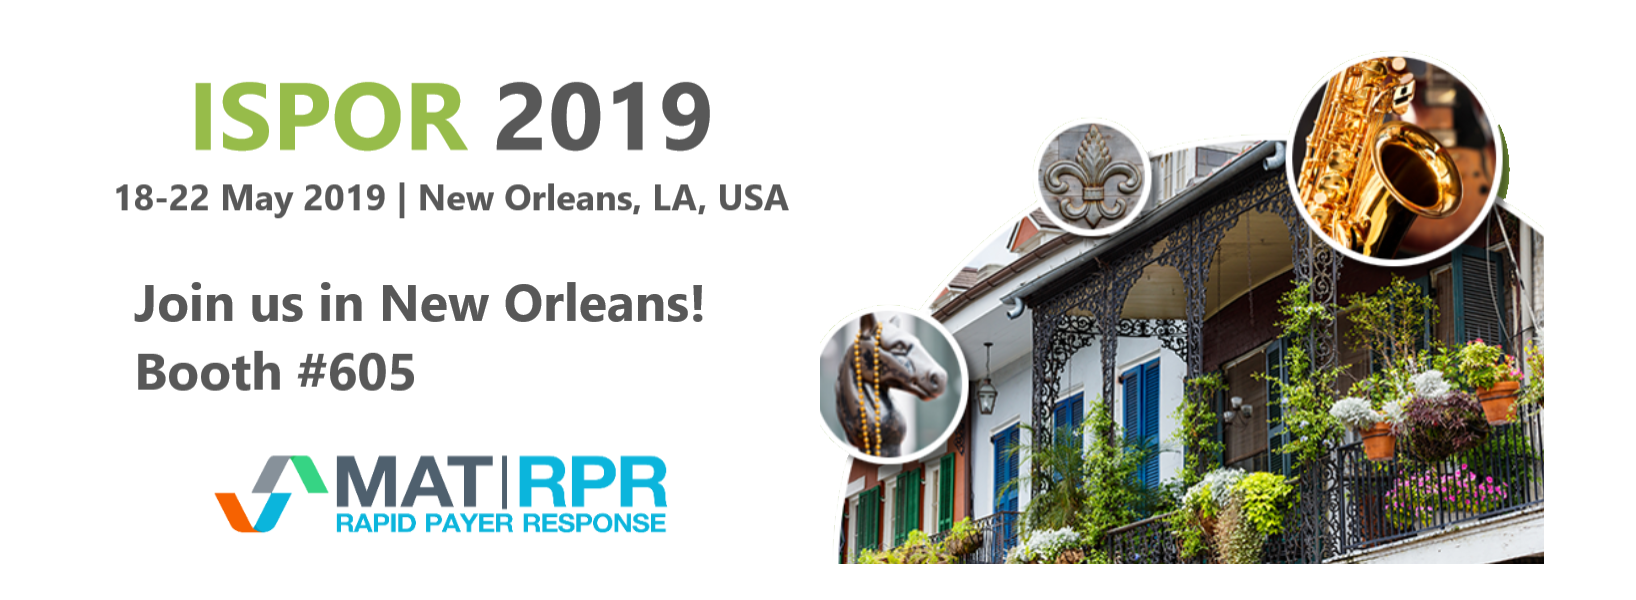 ISPOR Annual Conference | 2019    March 27, 2019    PAST EVENT    We are excited and proud to be exhibiting at this year's ISPOR Annual Conference taking place on 18-22 May in New Orleans, LA - USA  […]